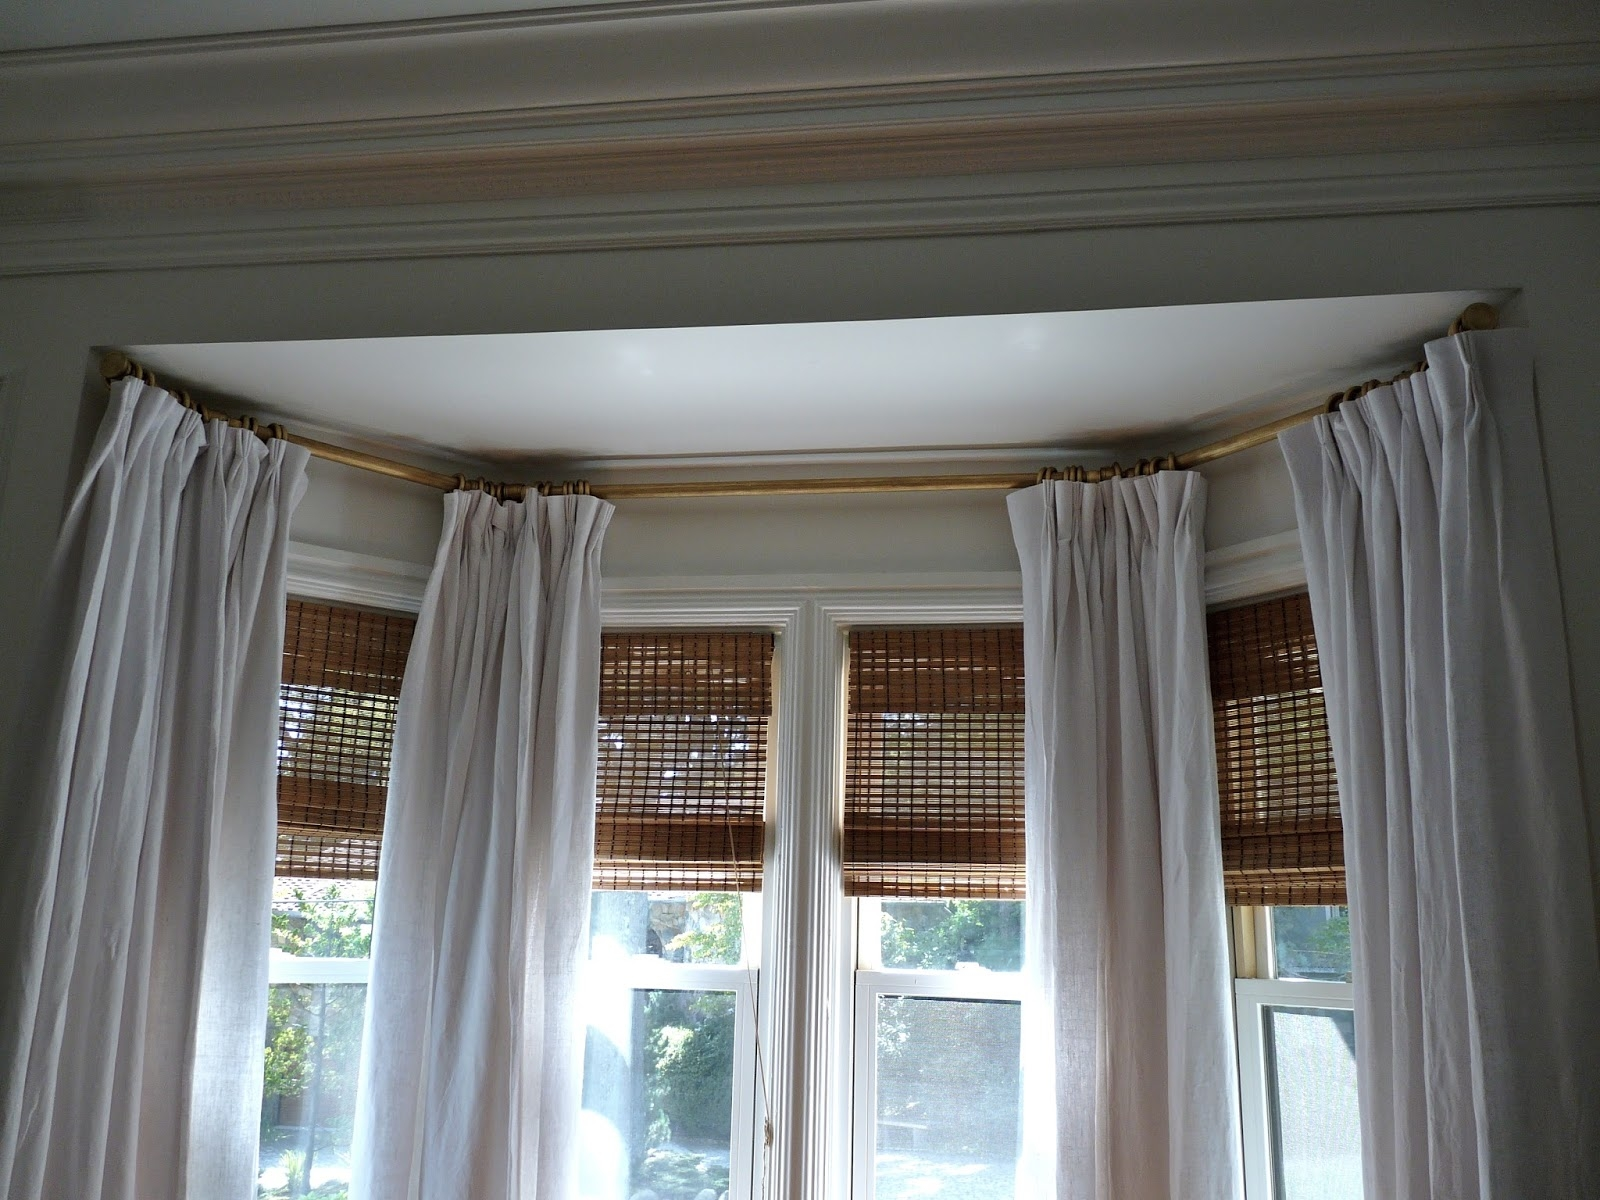 Bay Window Curtain Treatments Yahoo Image Search Results In Ready Made Curtains For Bay Windows (View 3 of 15)